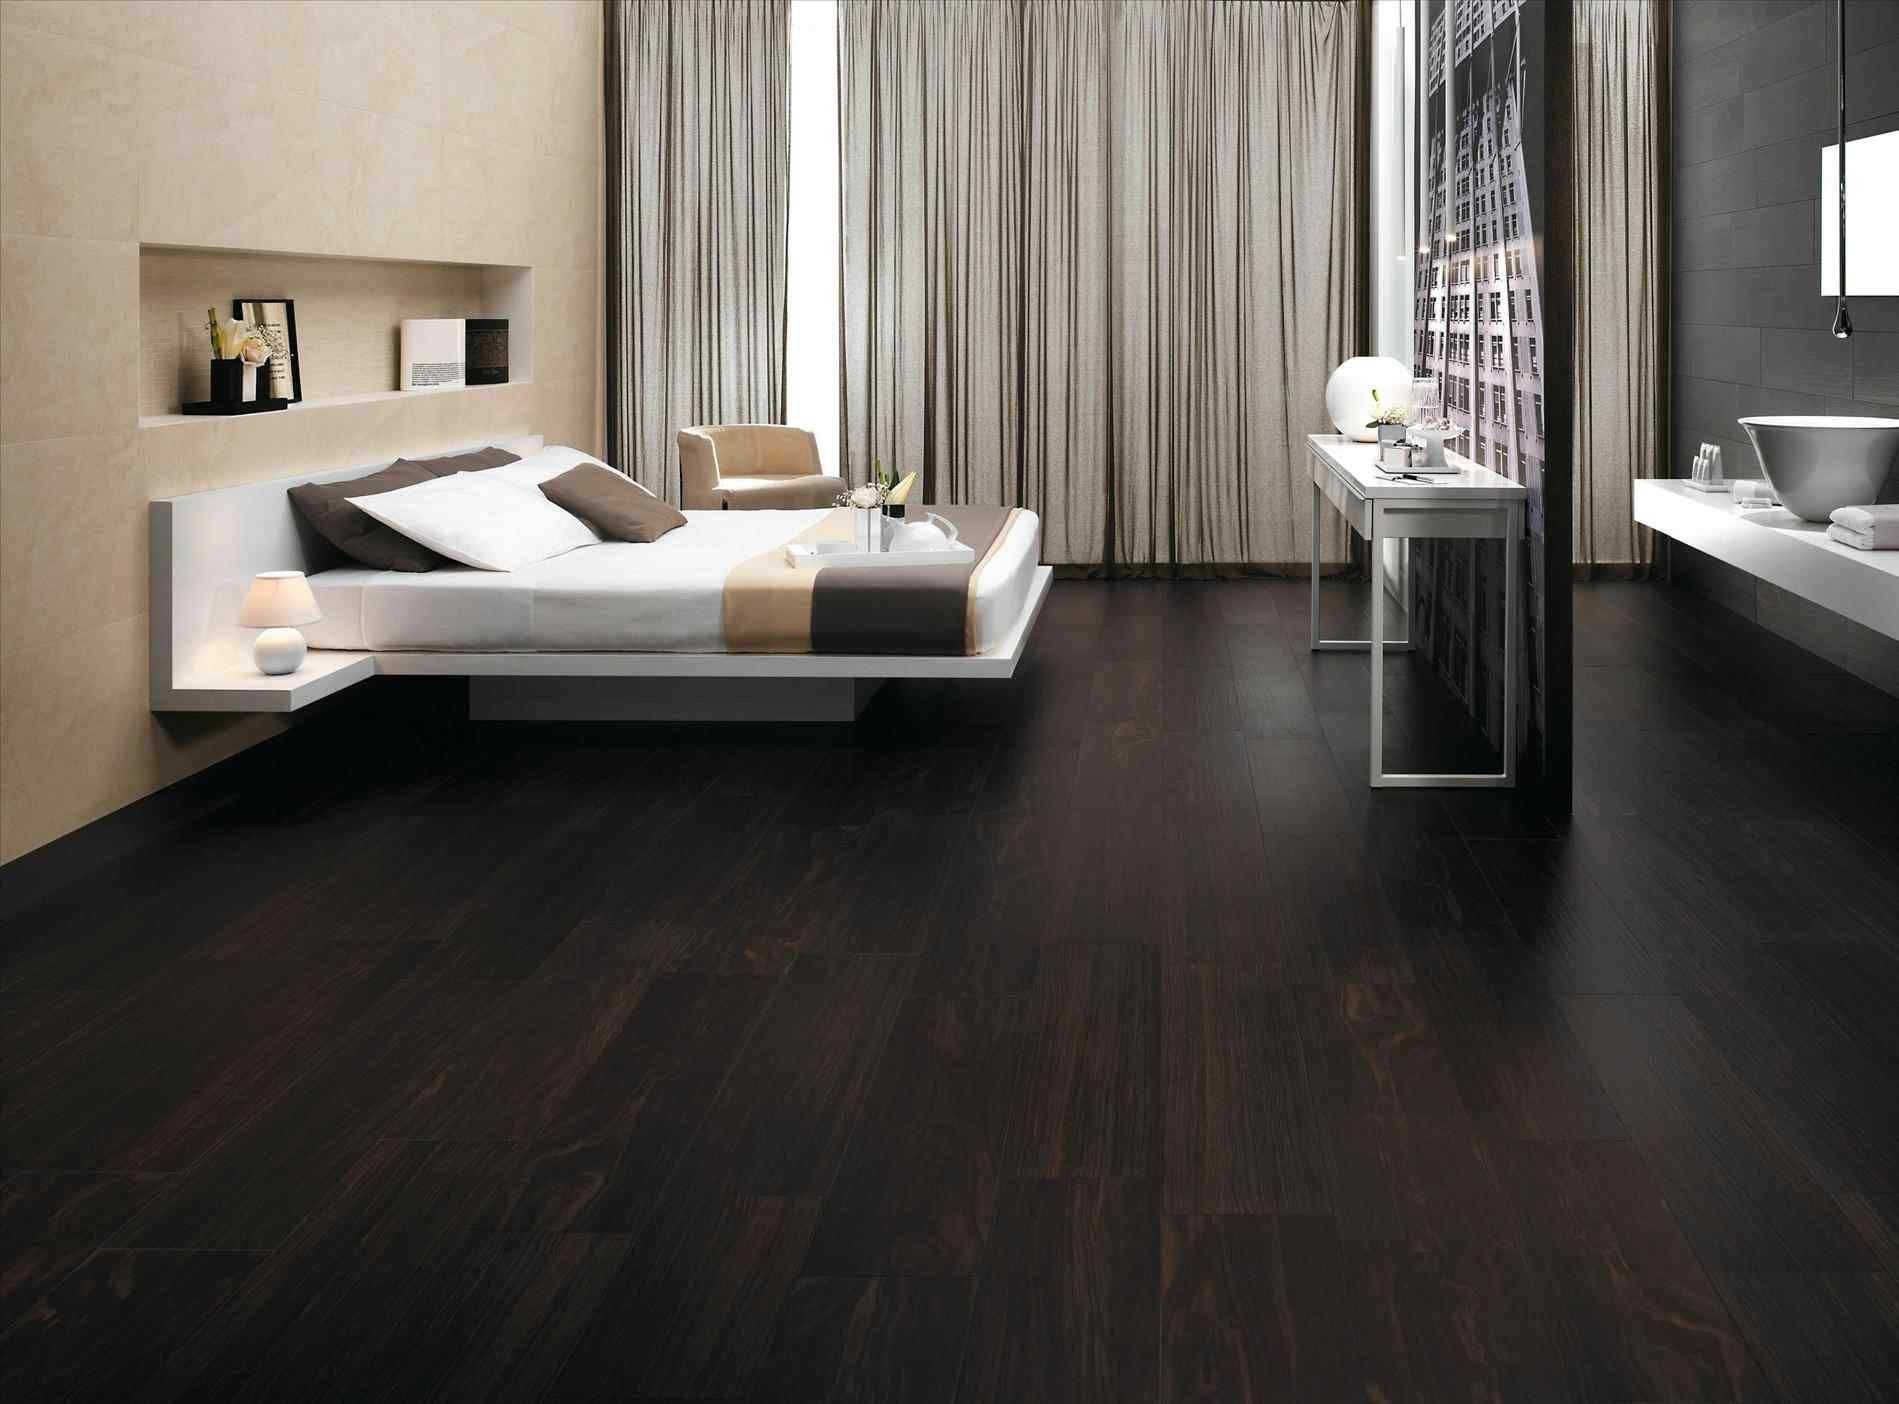 Bedroom Red Paint Modern Black Furniture Excerpt And White Home Decoration Home Decorators Promo Good Idea Tile Bedroom Bedroom Flooring Bedroom Wooden Floor